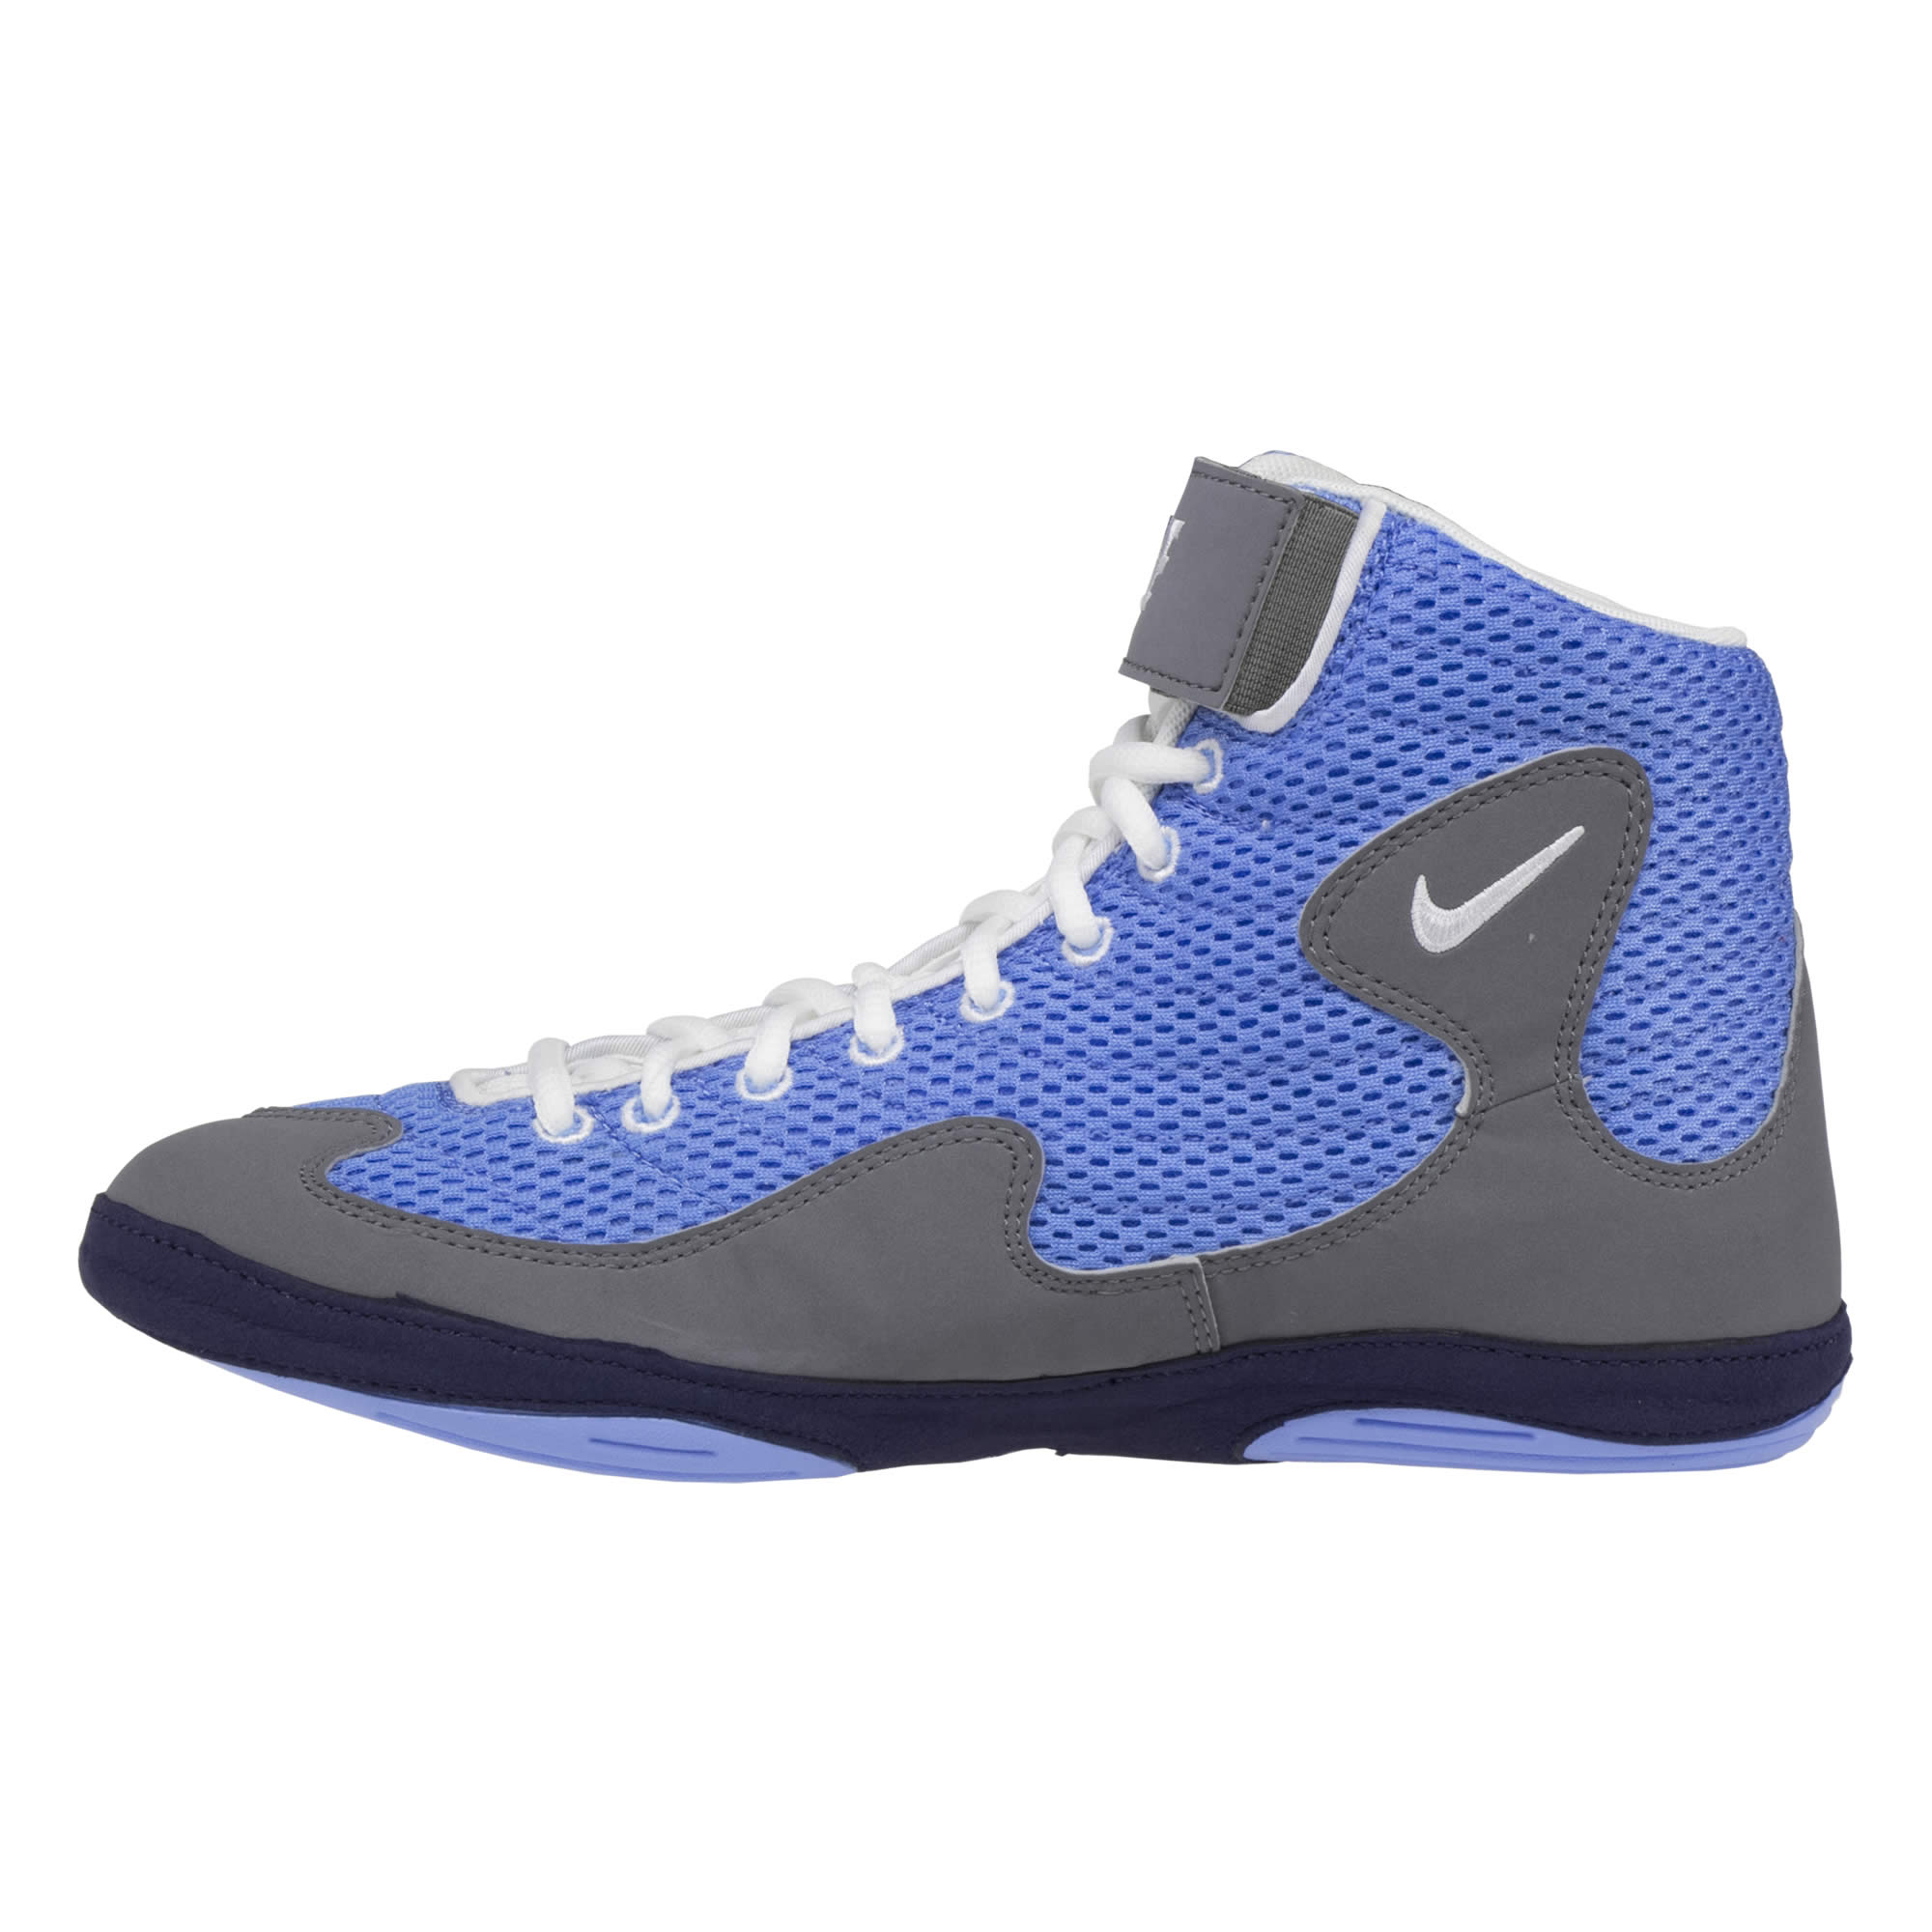 Nike Inflict 3 Shoes Wrestlingmart Free Shipping